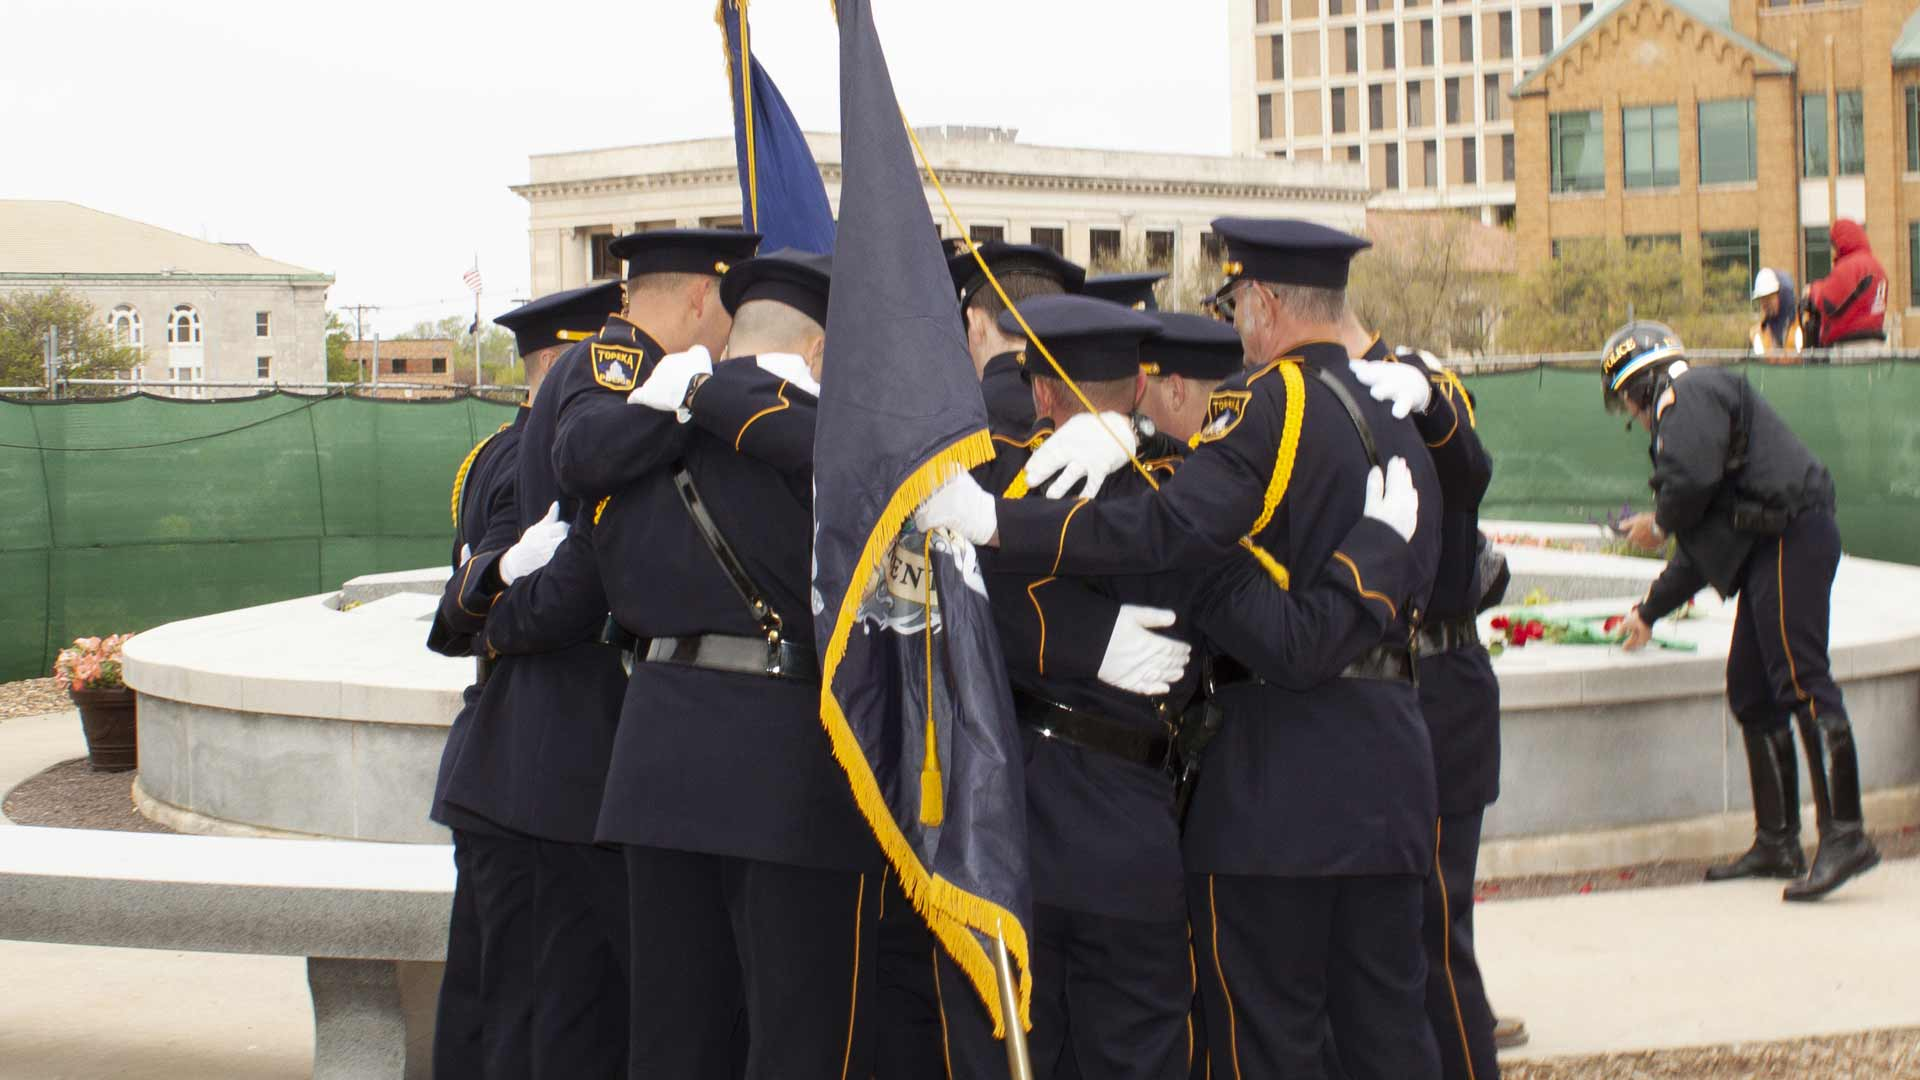 Officers Layer-41